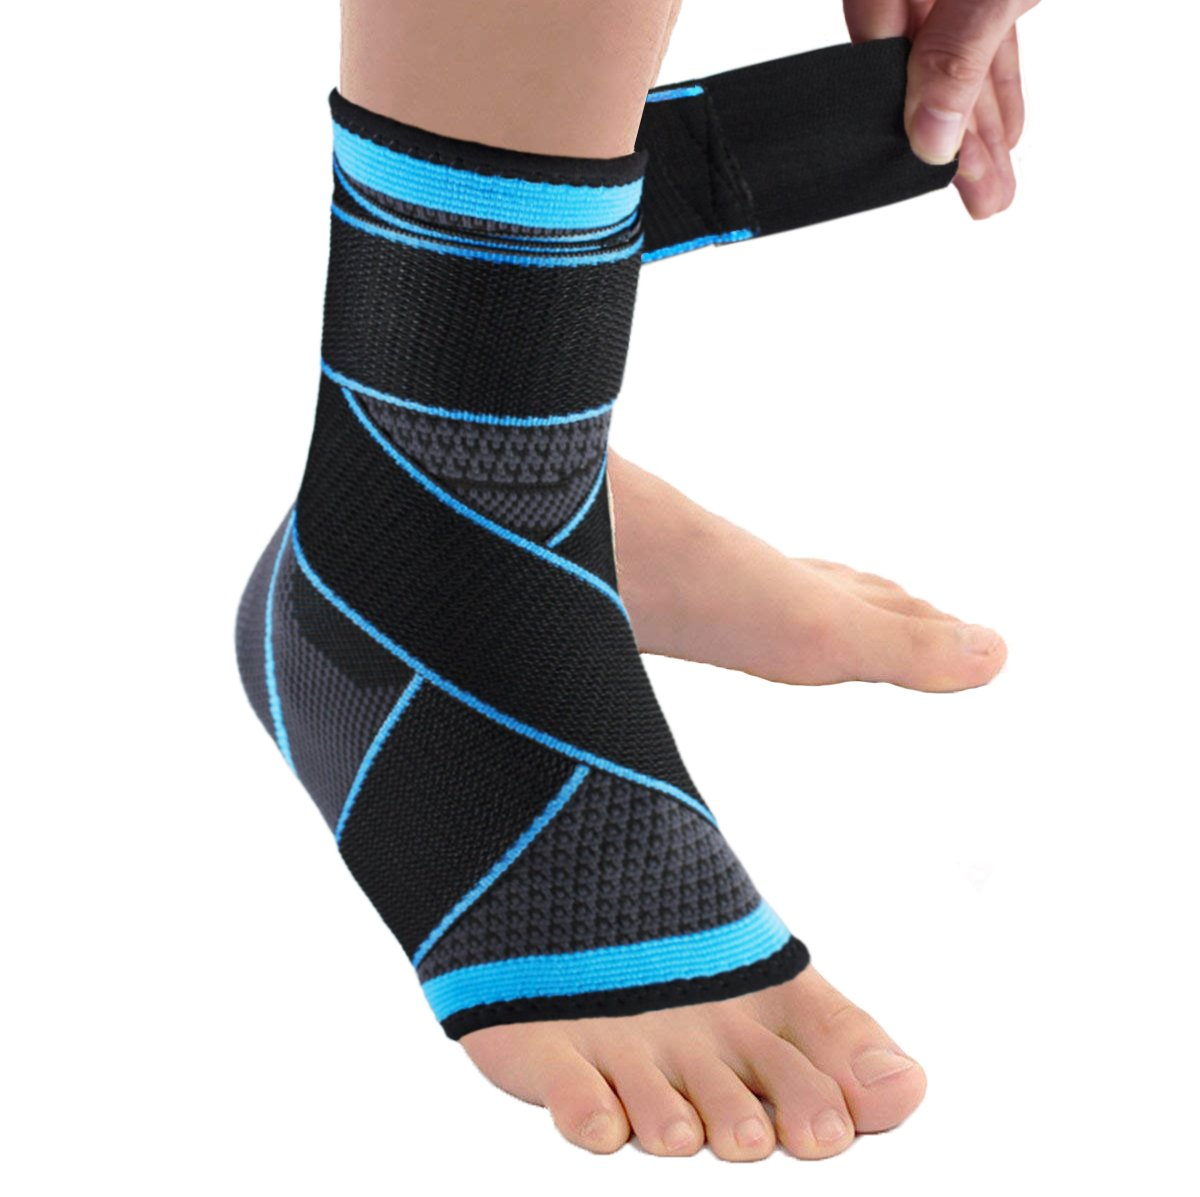 Plantar Fasciitis Ankle Brace Sock, Compression Achilles Tendon Support Sleeve with Adjustable Strap for Eases Swelling,Joint Pain Foot Pain Relief from Heel Spurs